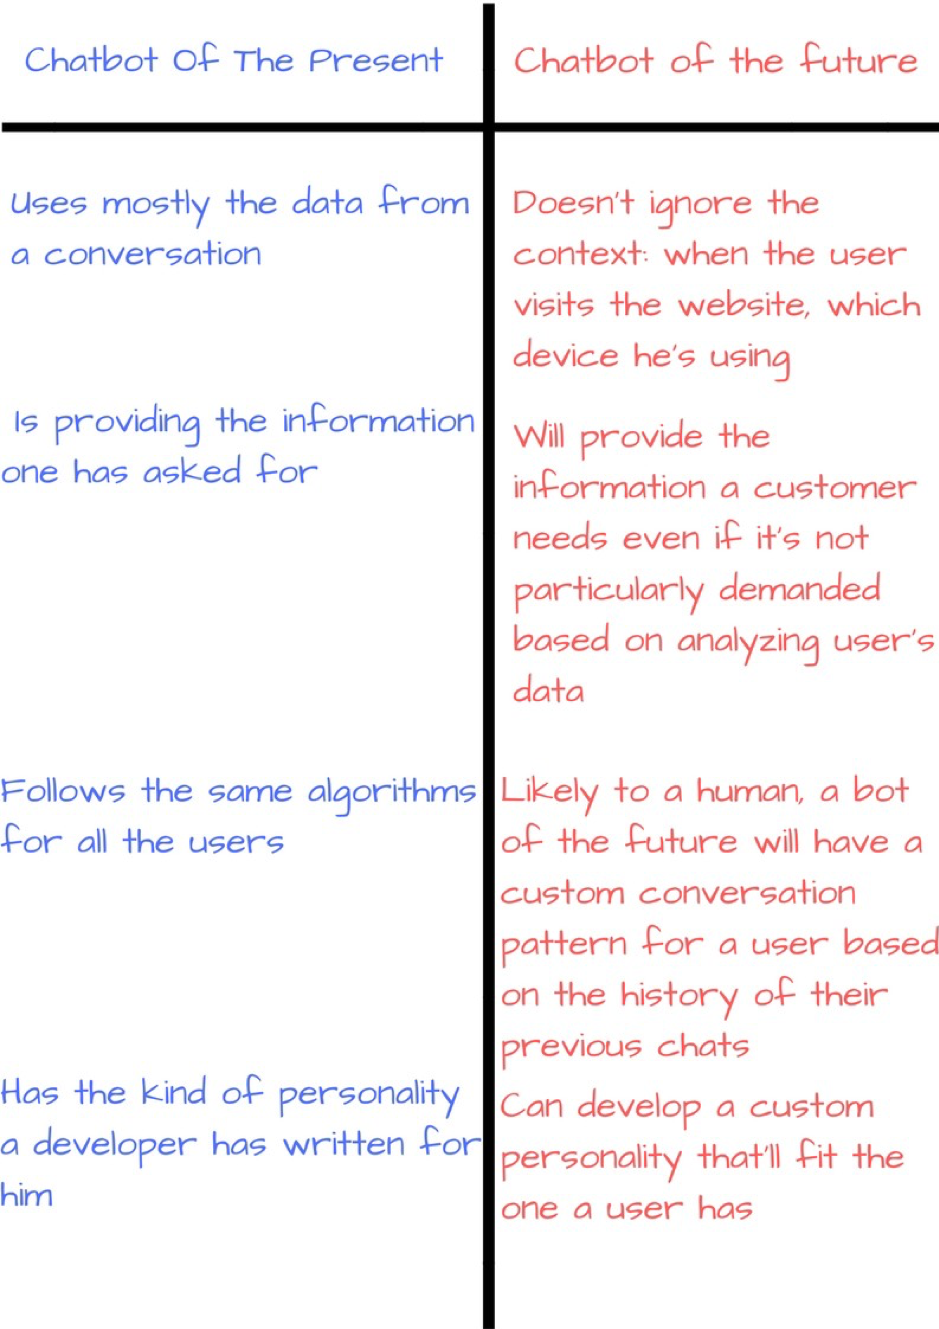 Chatbot of the present vs. Chatbot of the future